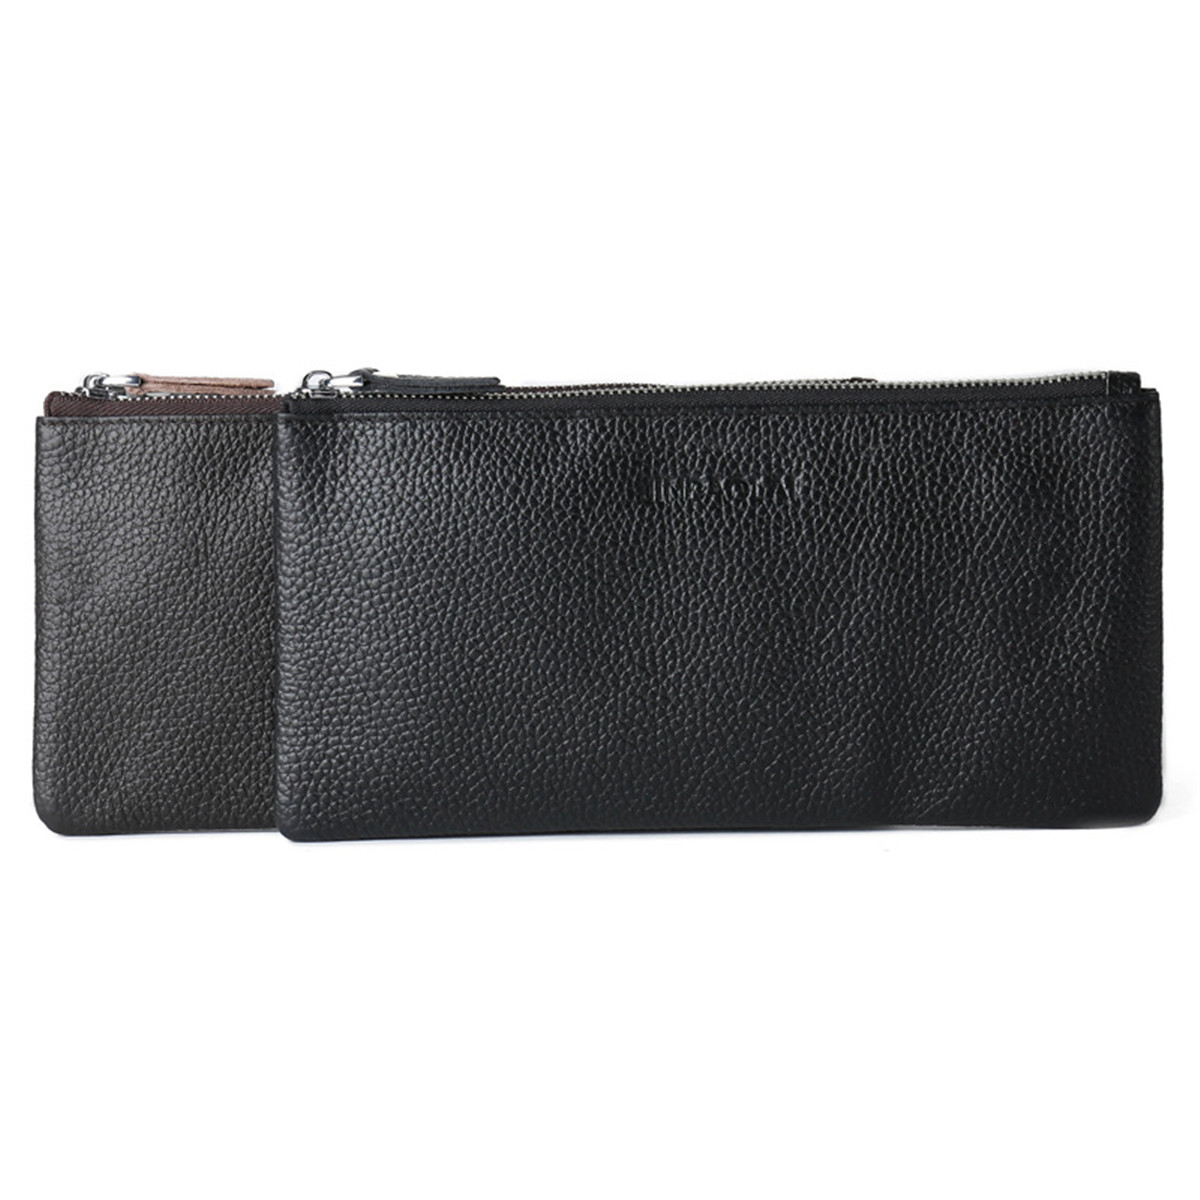 Multifunctional Men Vintage Cow Leather Long Phone Bag Card Cash Case Holder Zipper Wallet Purse